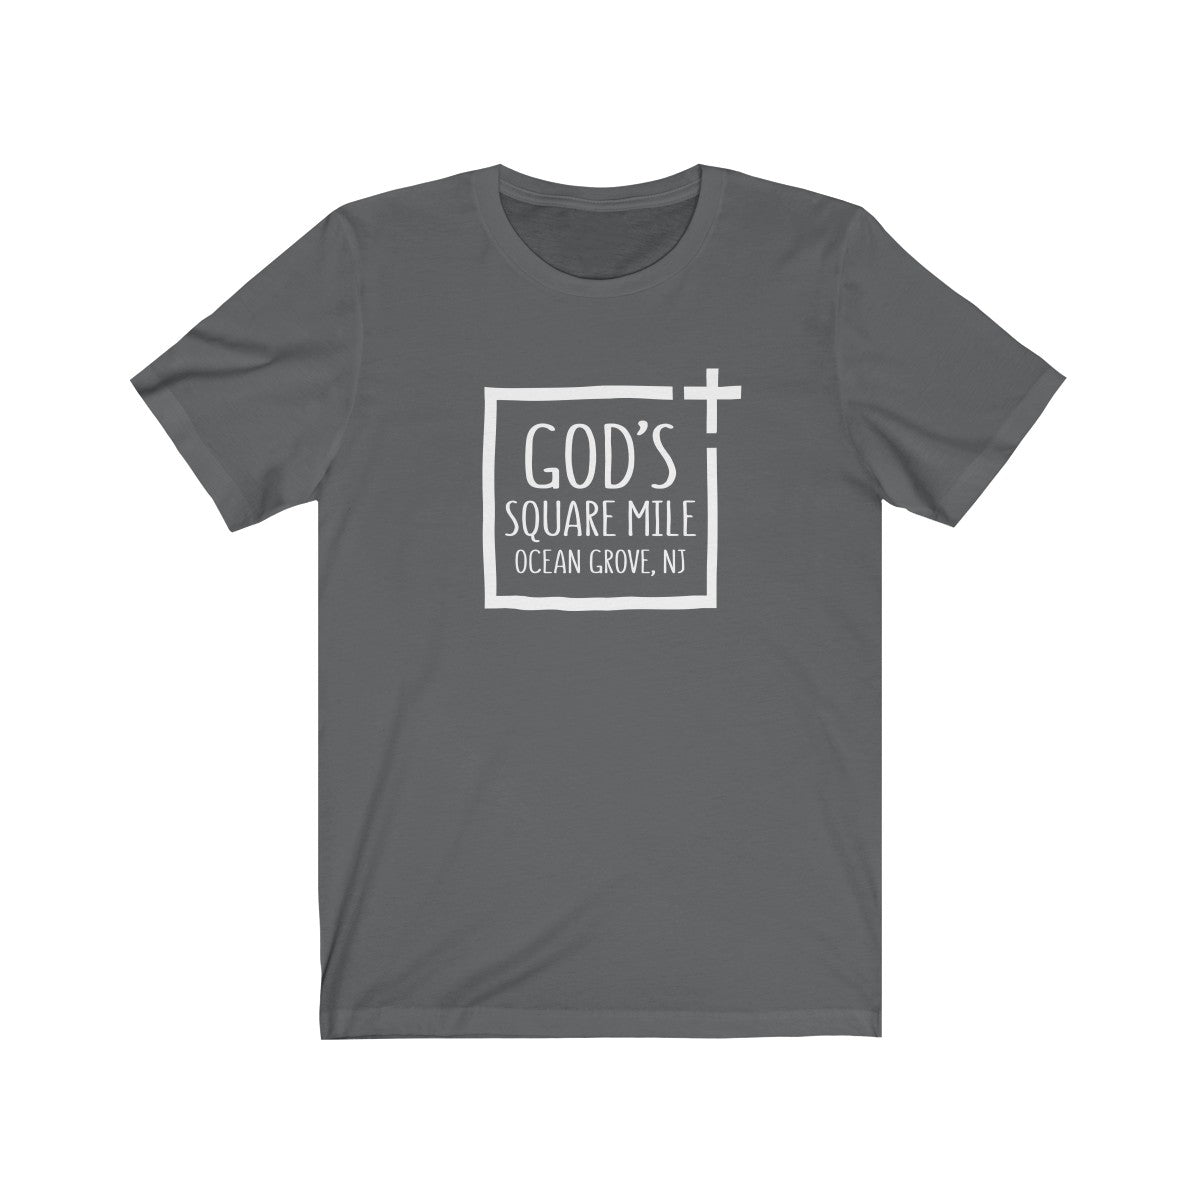 God's Square Mile Short Sleeve Tshirt: Multiple Colors - GoGannon Designs